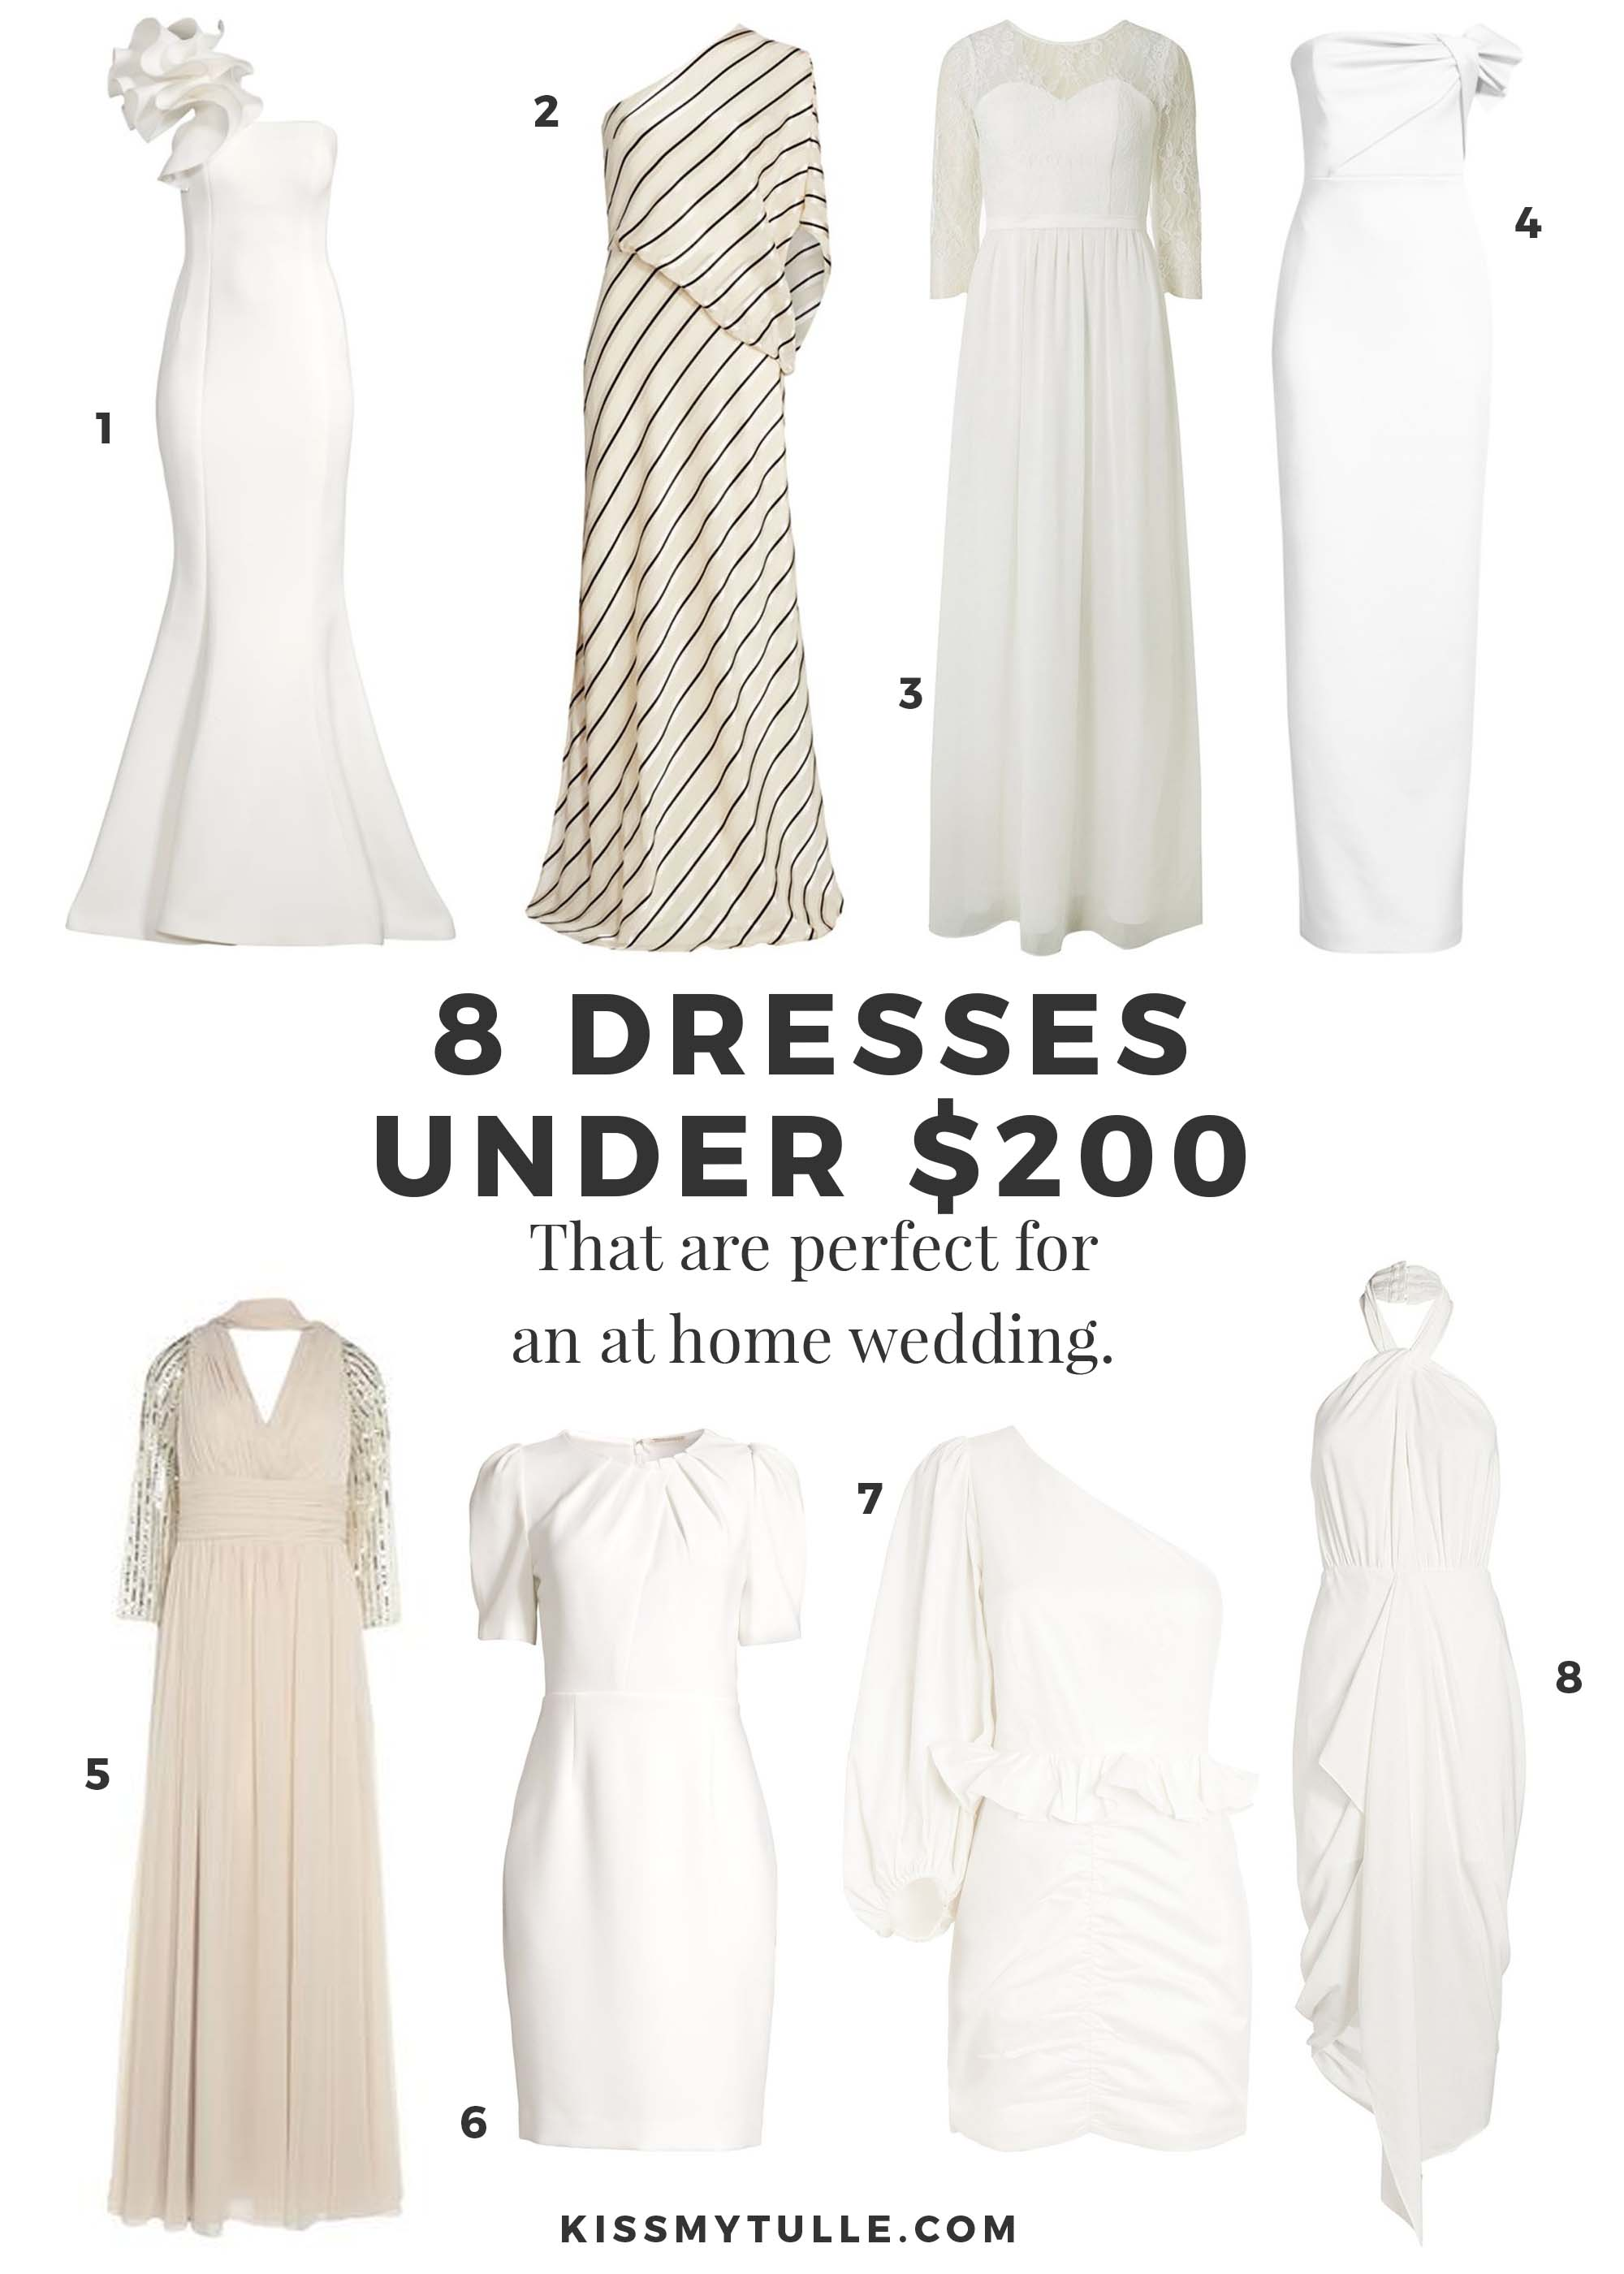 Reworked wedding plans due to the pandemic? Still want to wear a pretty dress? Click through for 8 dresses under $200 perfect for an at home wedding.